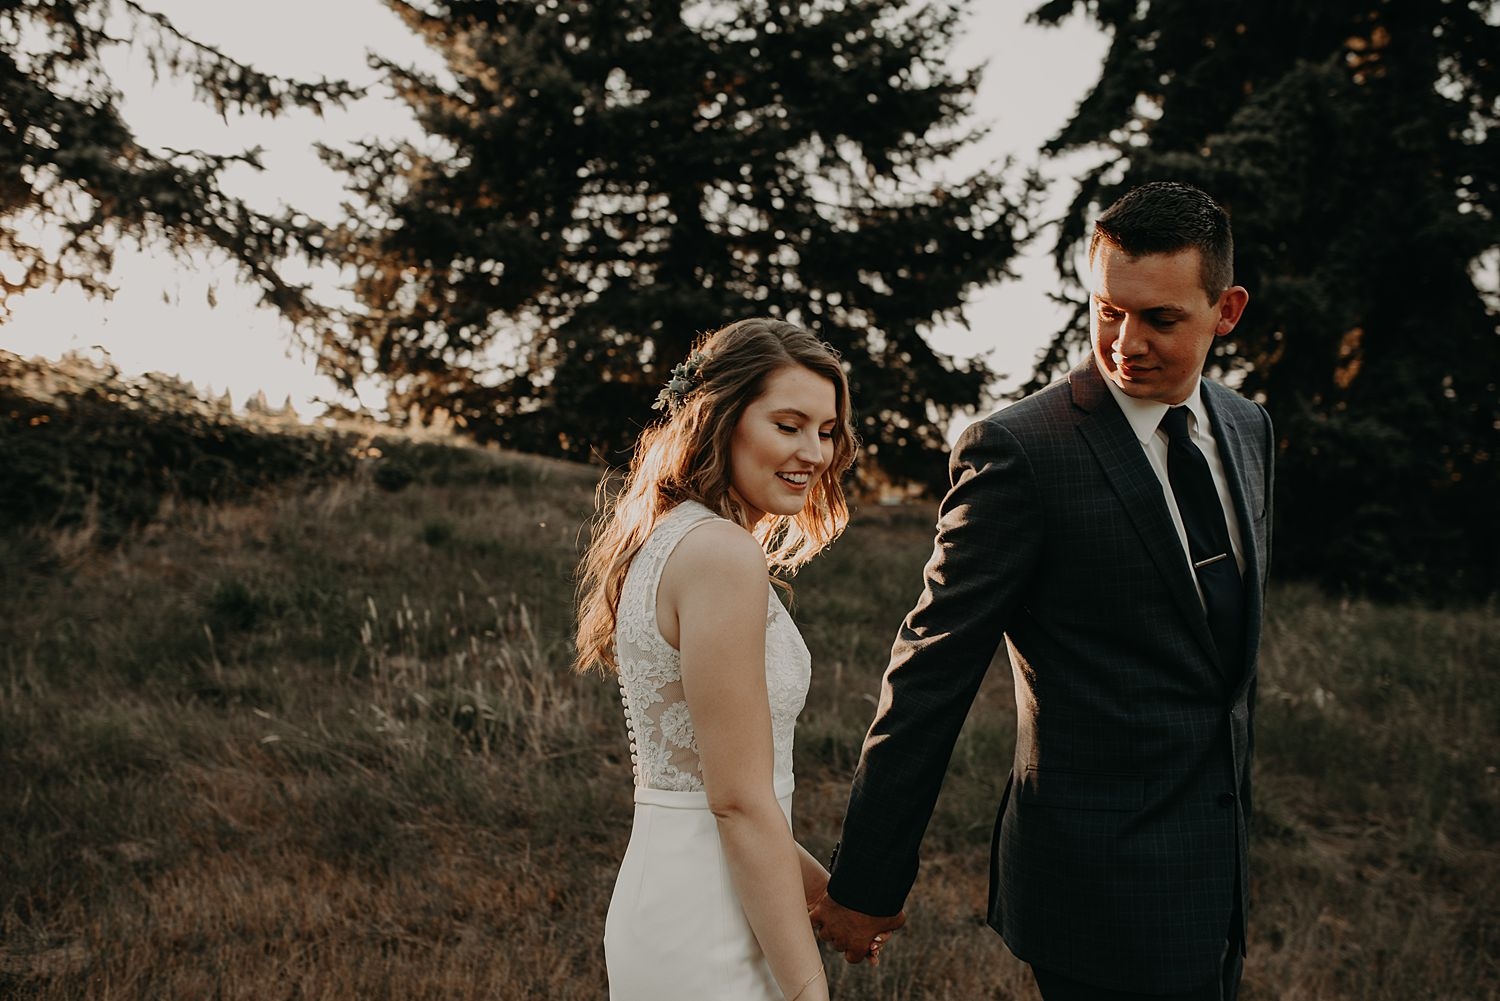 Kayla_Josh_Oregon_Wedding_July29_2018_0215.jpg